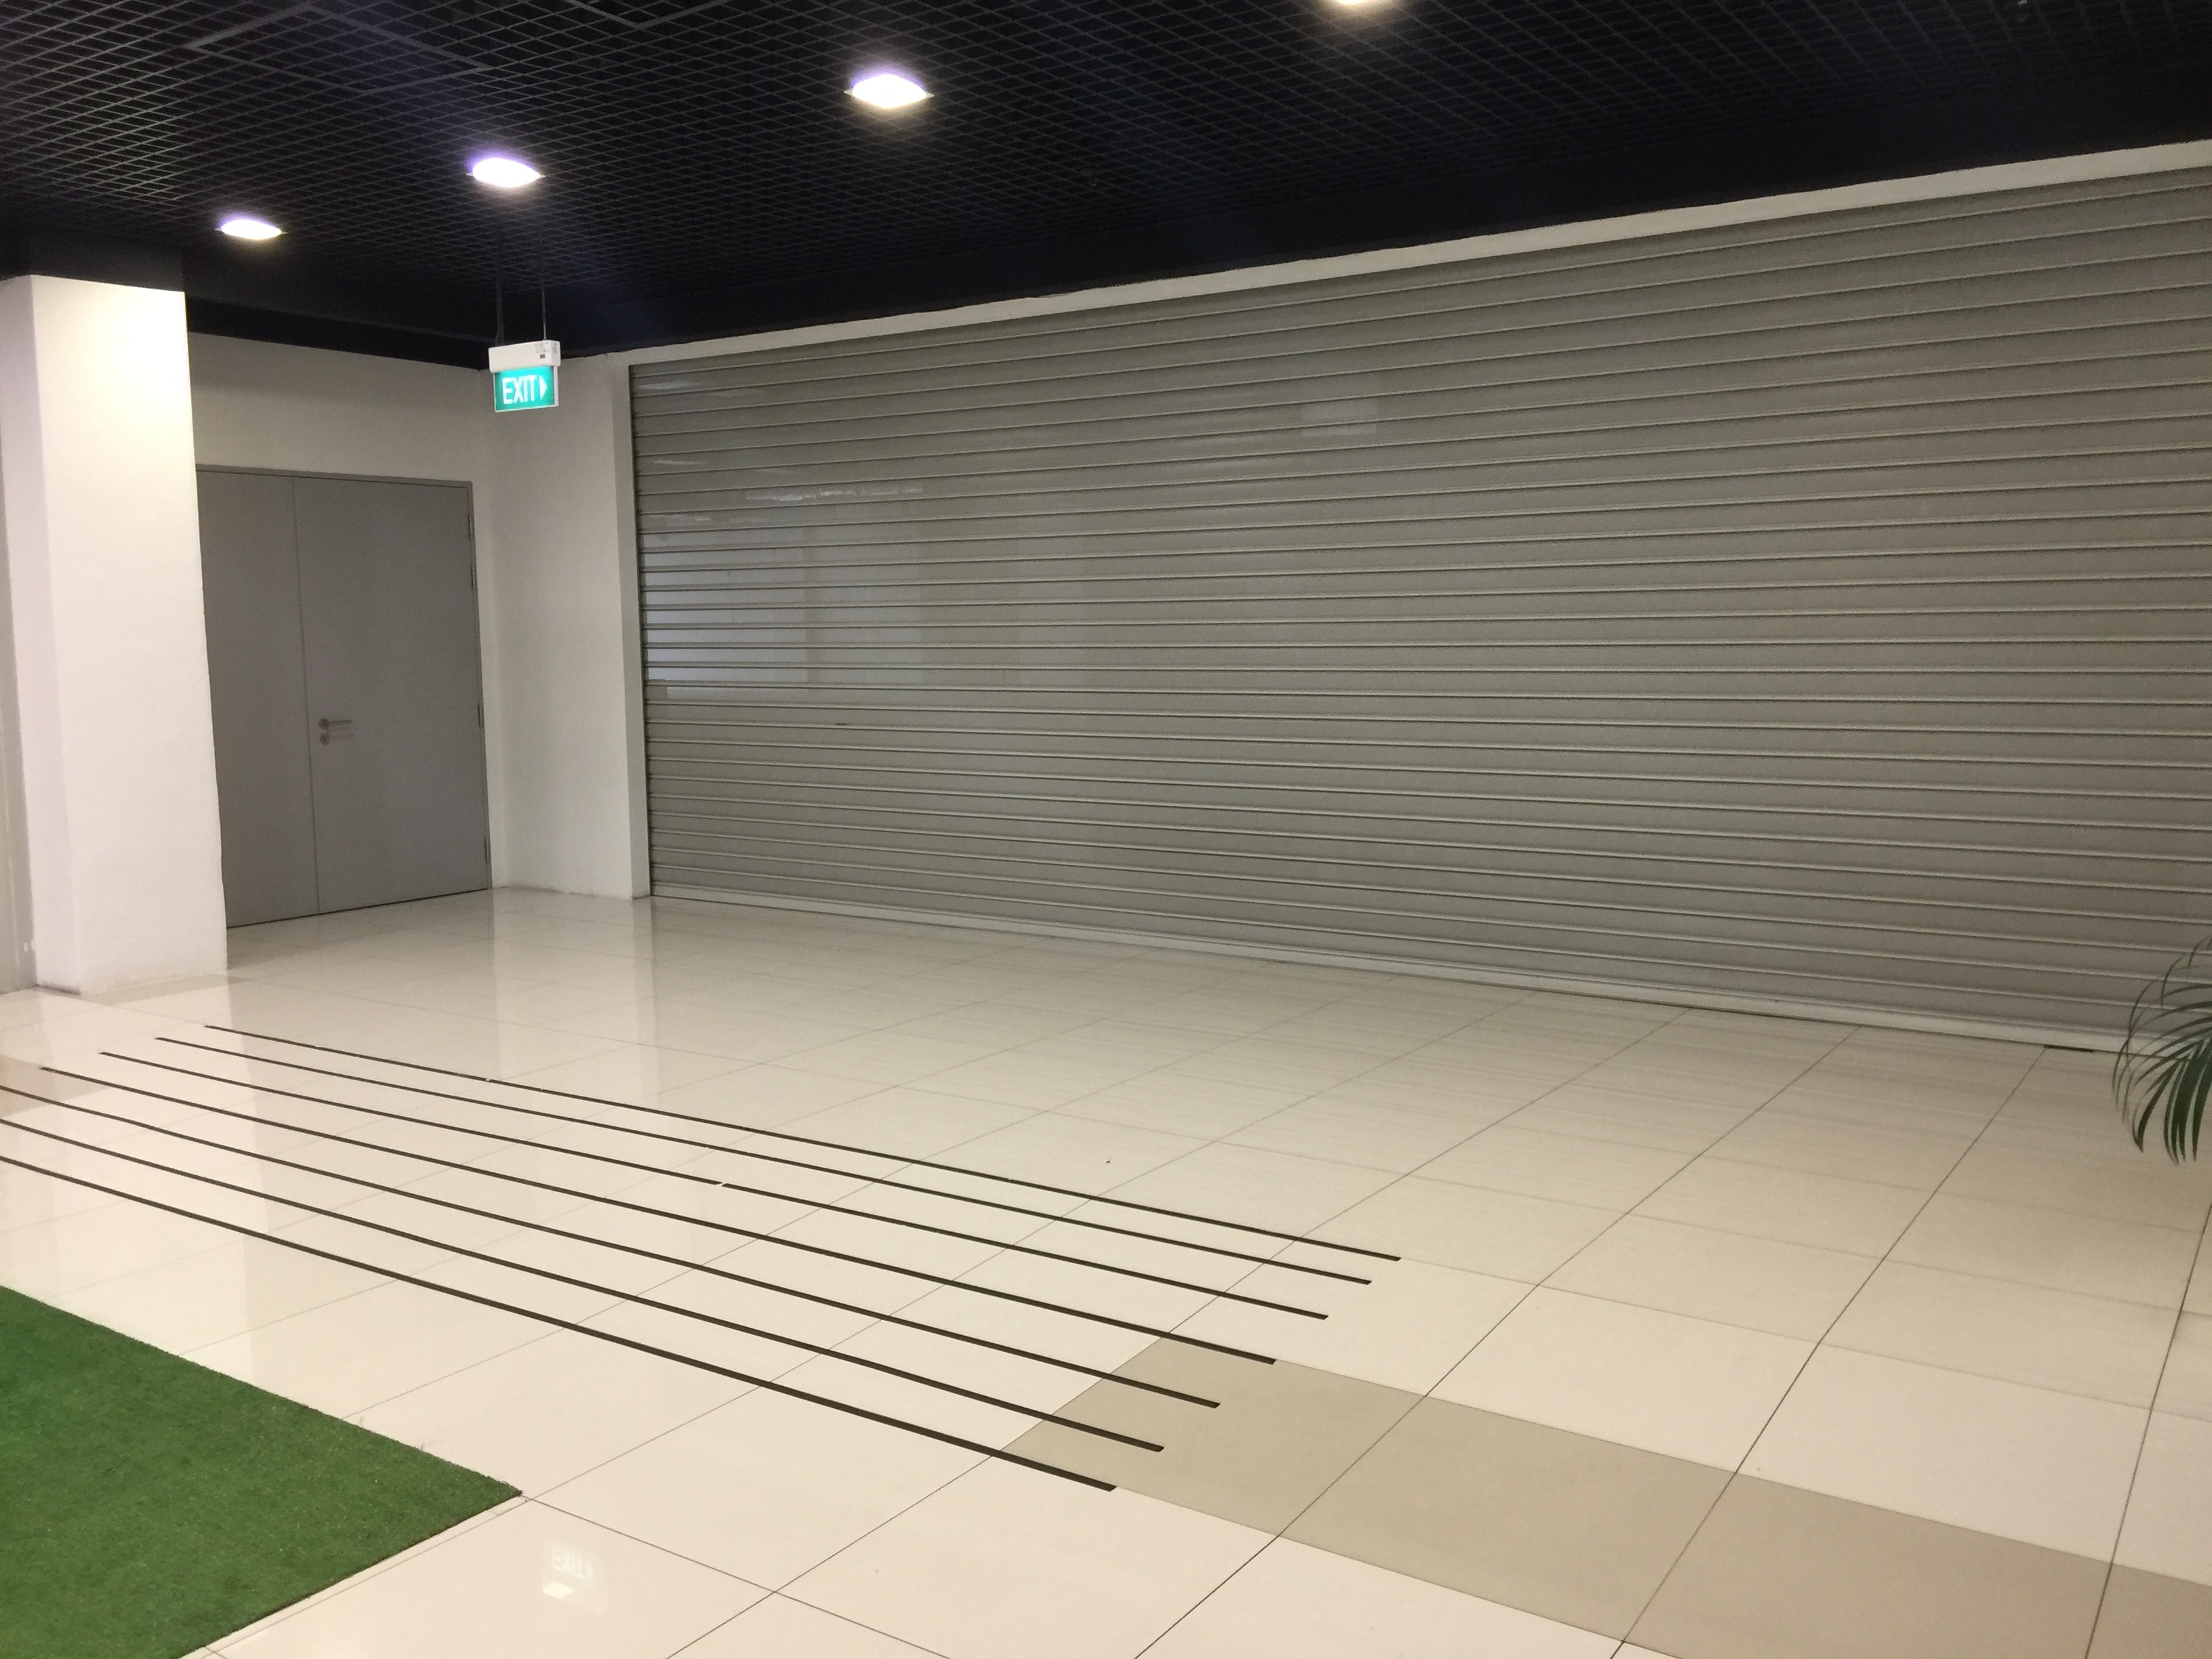 Unit 01-07 of 750 Chai Chee Road, previously occupied by Global Halal Hub. (Photo: REITsWeek)